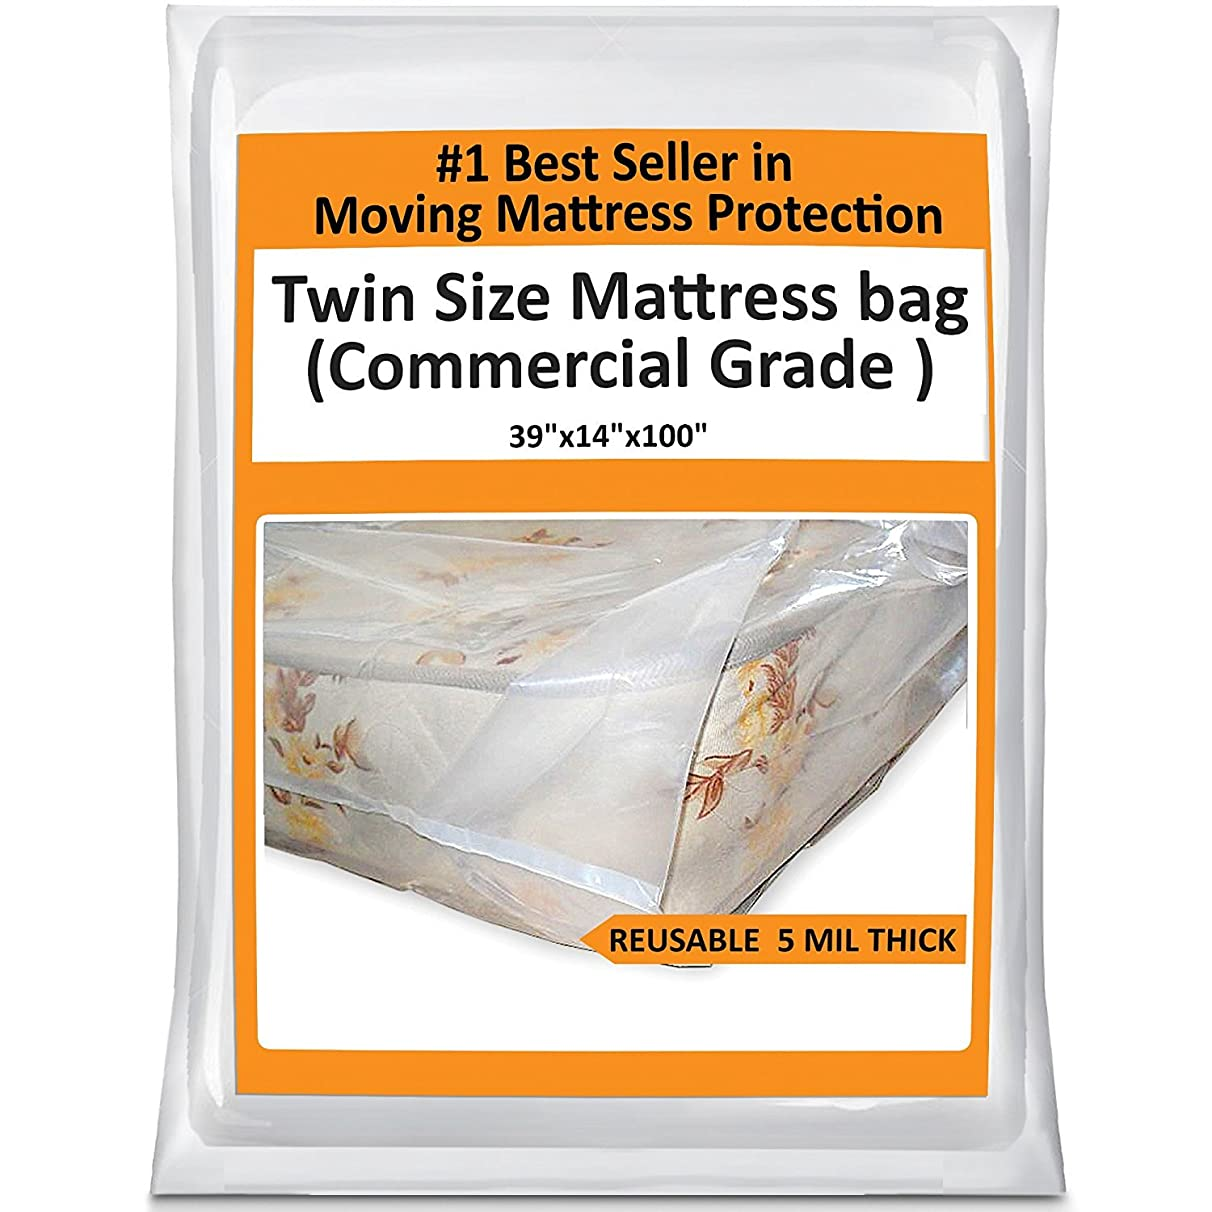 Twin Mattress Bag Cover for Moving or Storage - 5 Mil Heavy Duty Thick Plastic Wrap Protector Reusable Bag